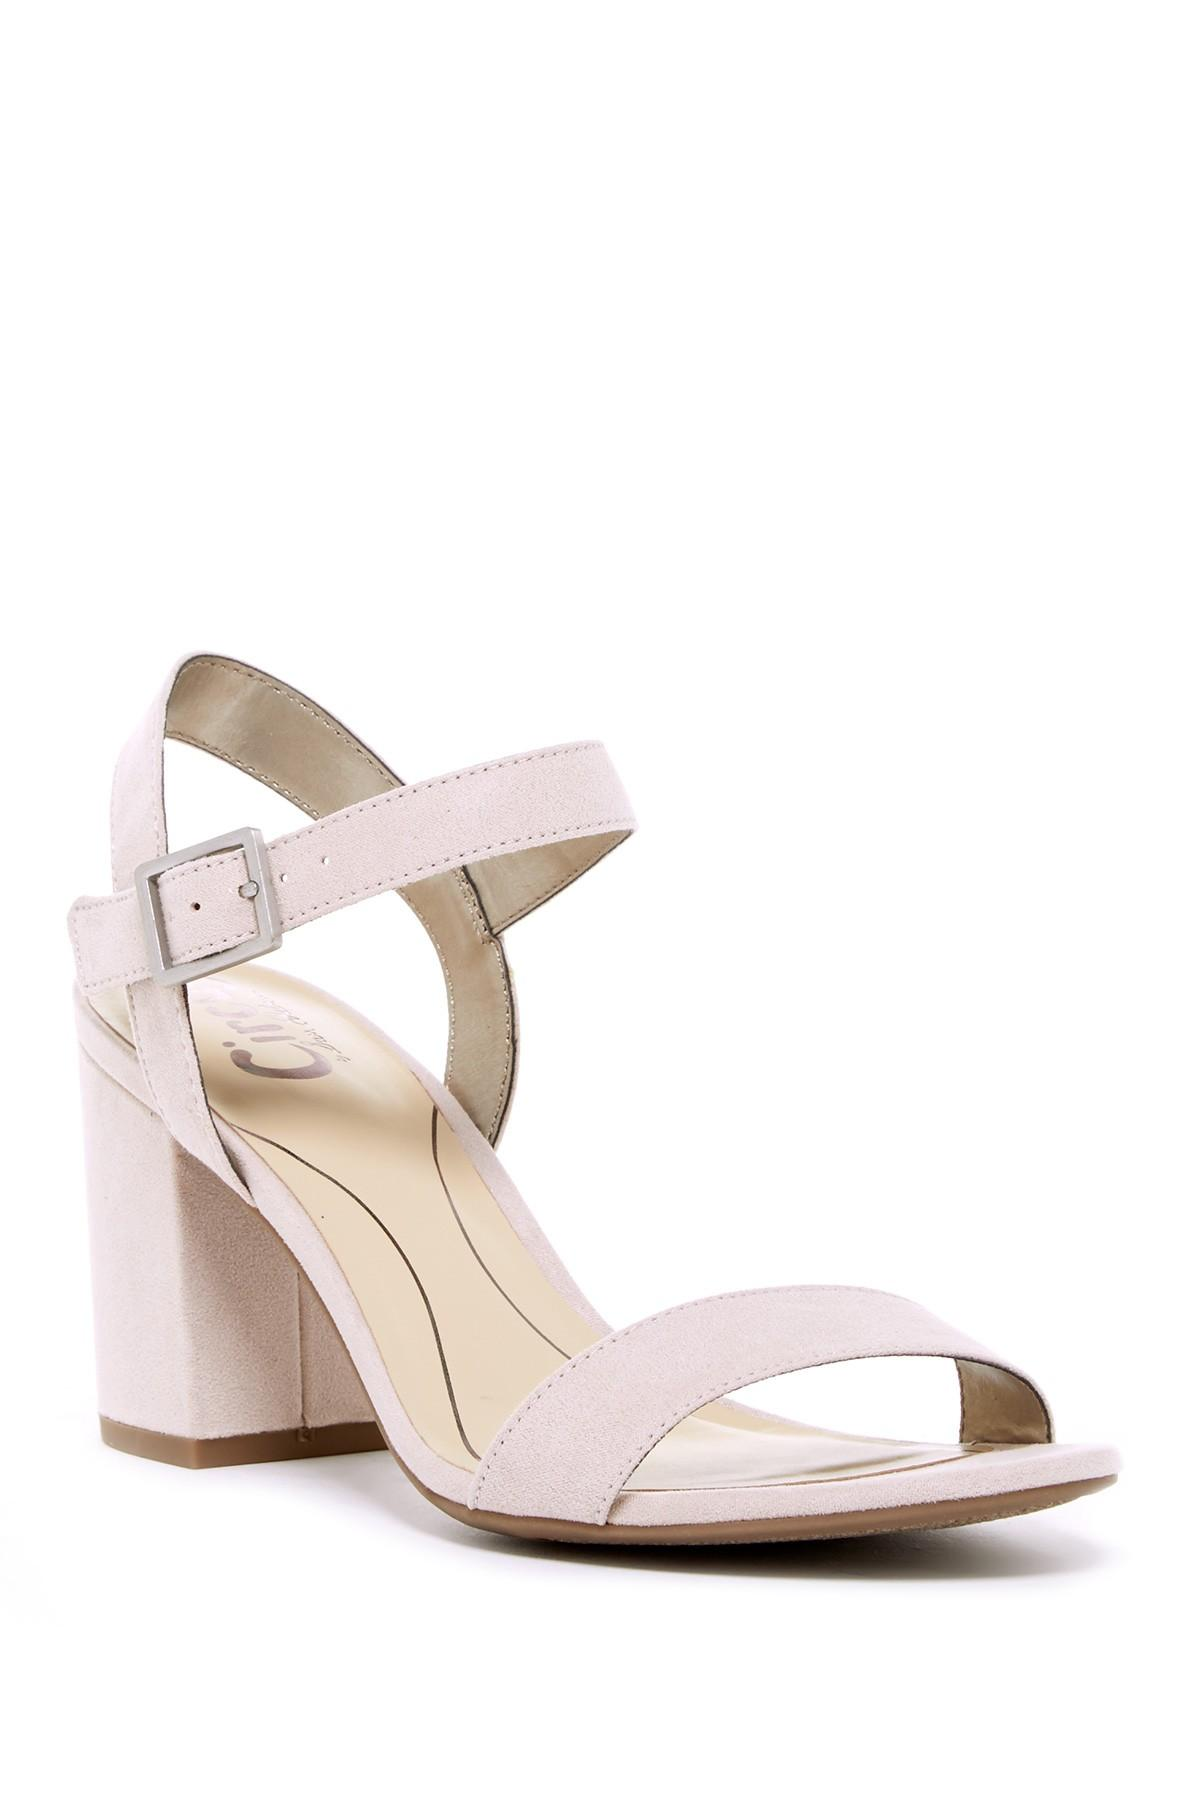 f482339e7725 Lyst - Circus by Sam Edelman Ashton Heeled Sandal in Pink